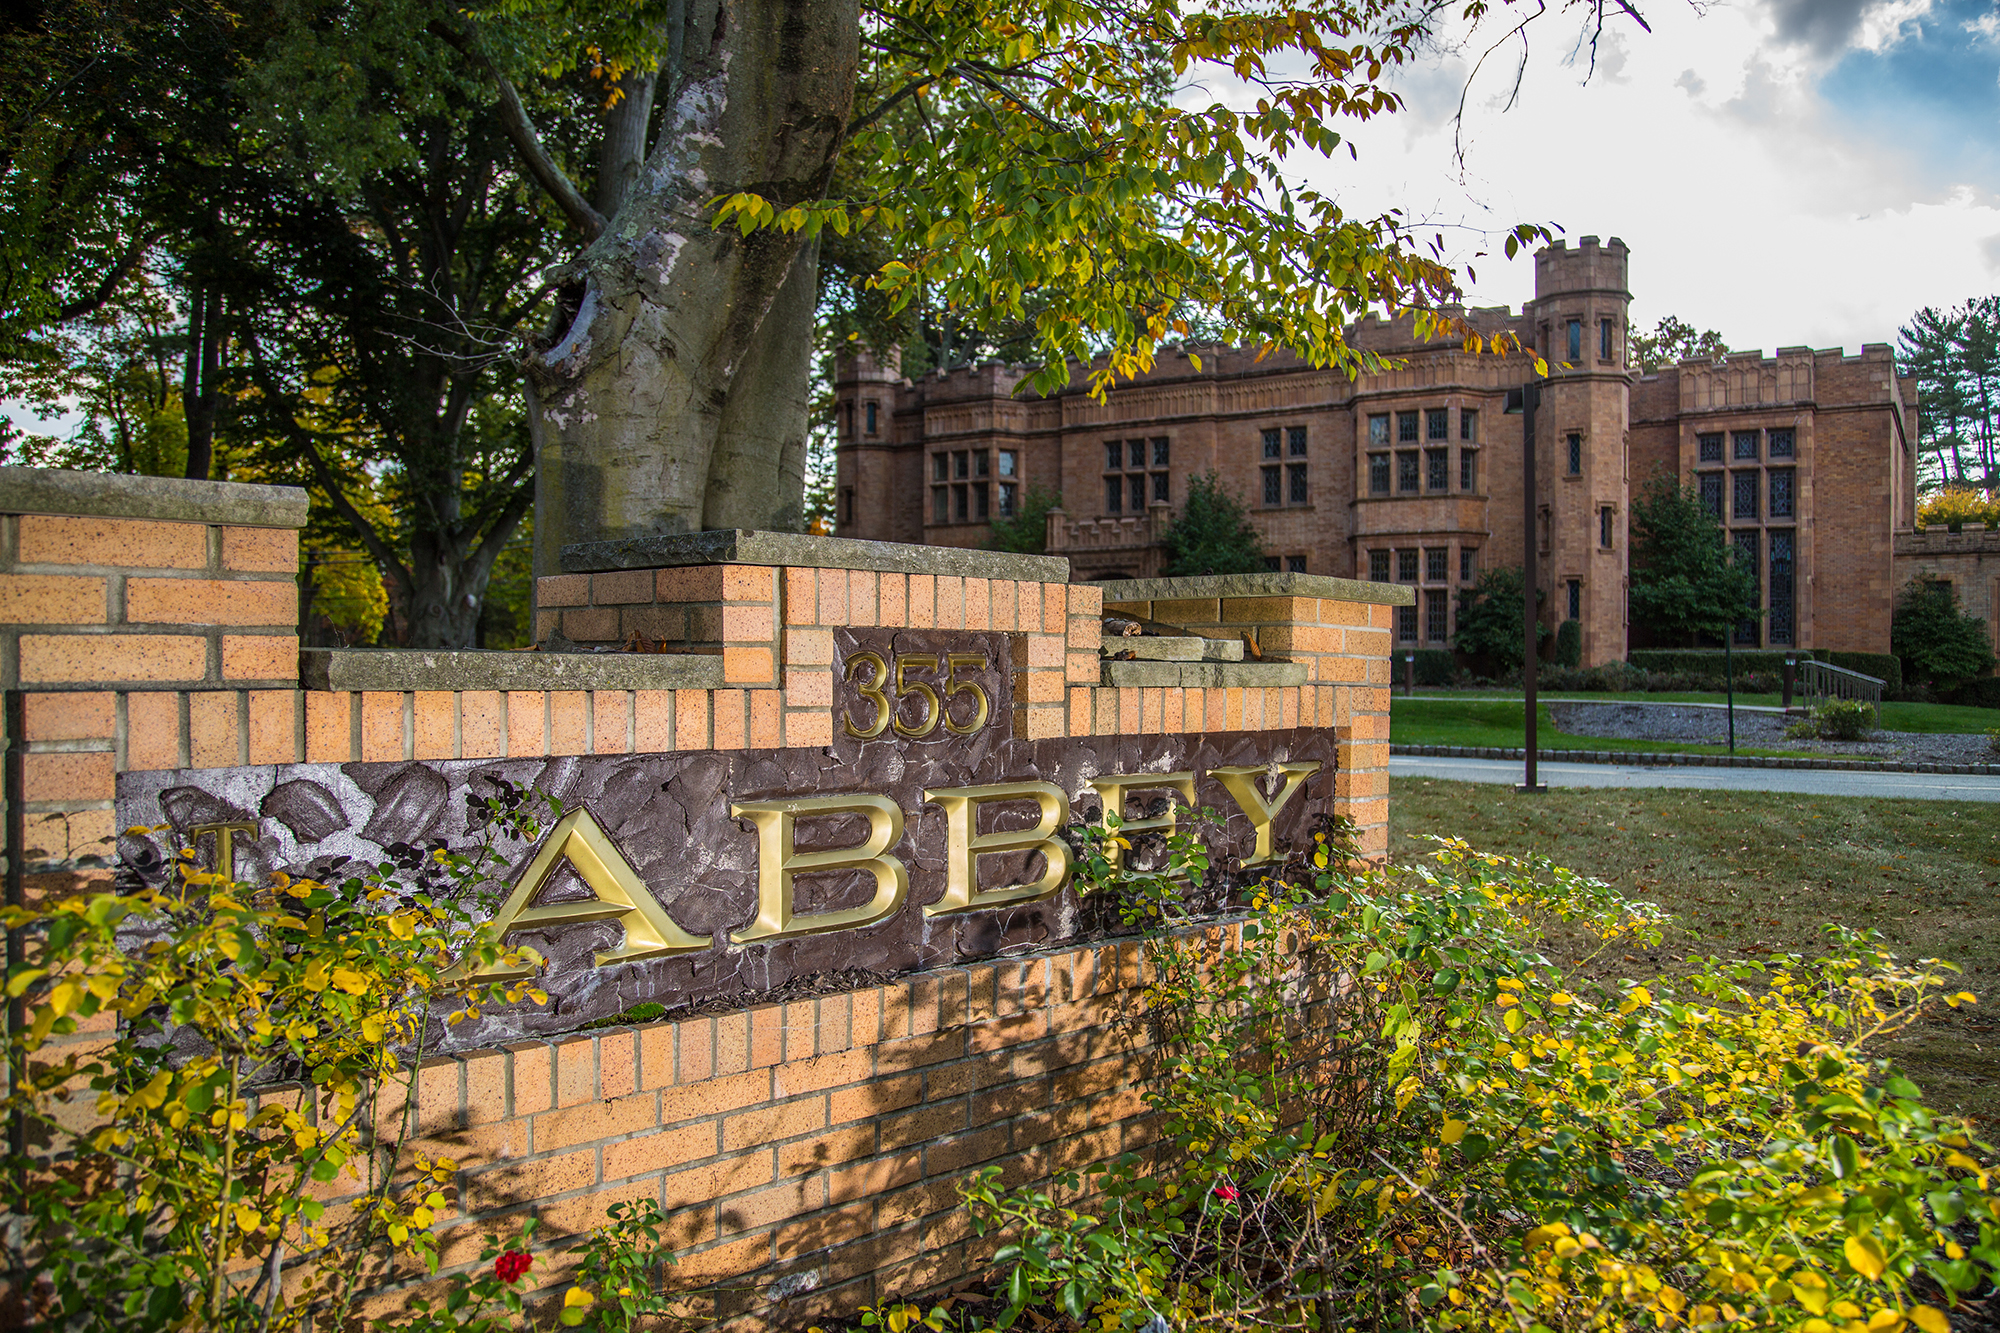 THE ABBEY - 355 MADISON AVENUE • MORRISTOWN • NEW JERSEY • 07960